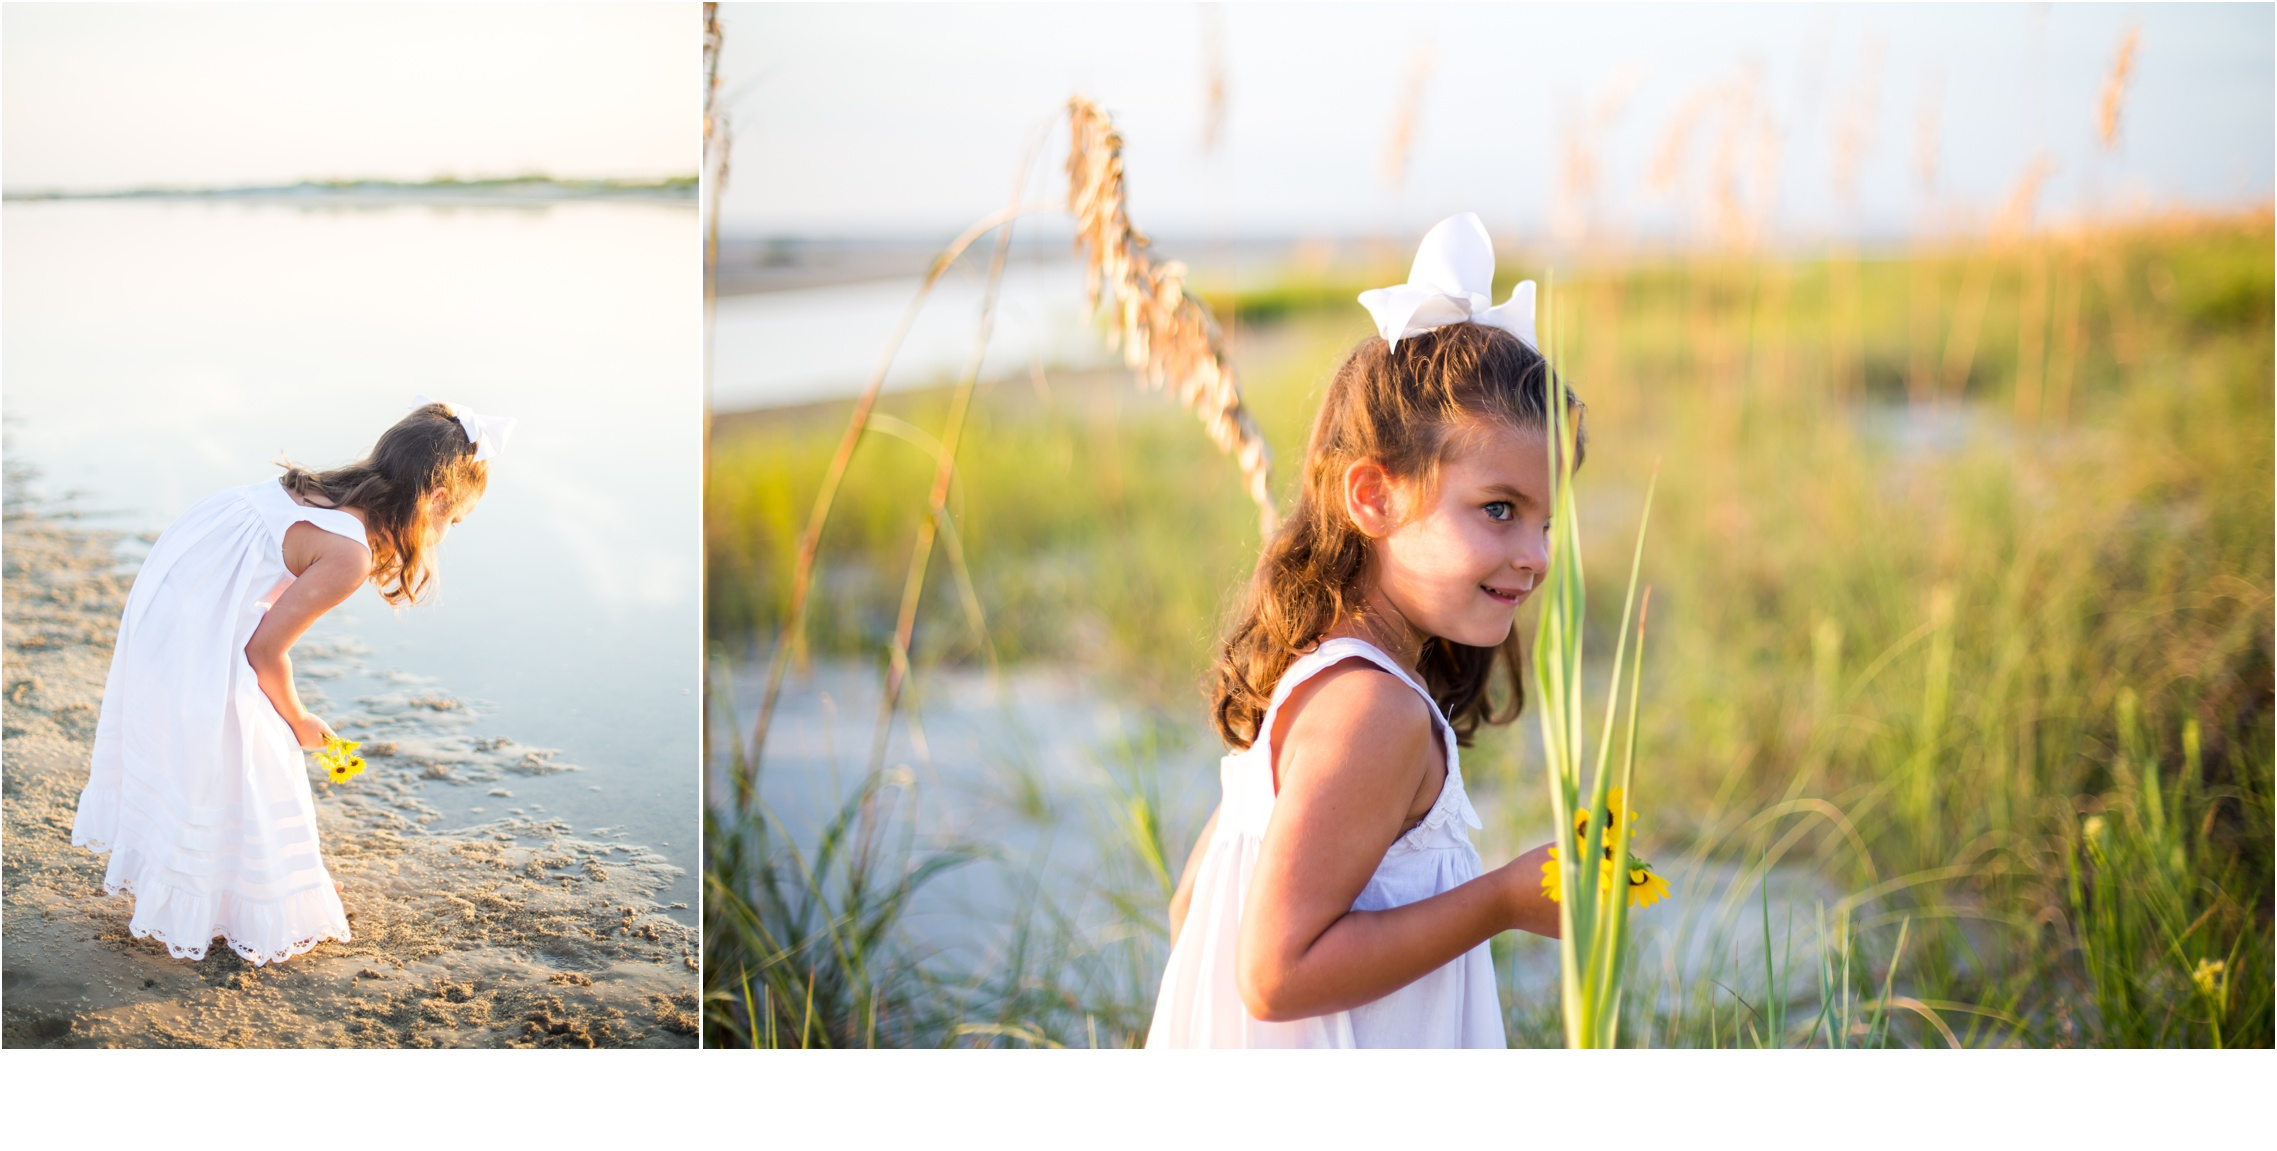 Rainey_Gregg_Photography_St._Simons_Island_Georgia_California_Wedding_Portrait_Photography_0176.jpg